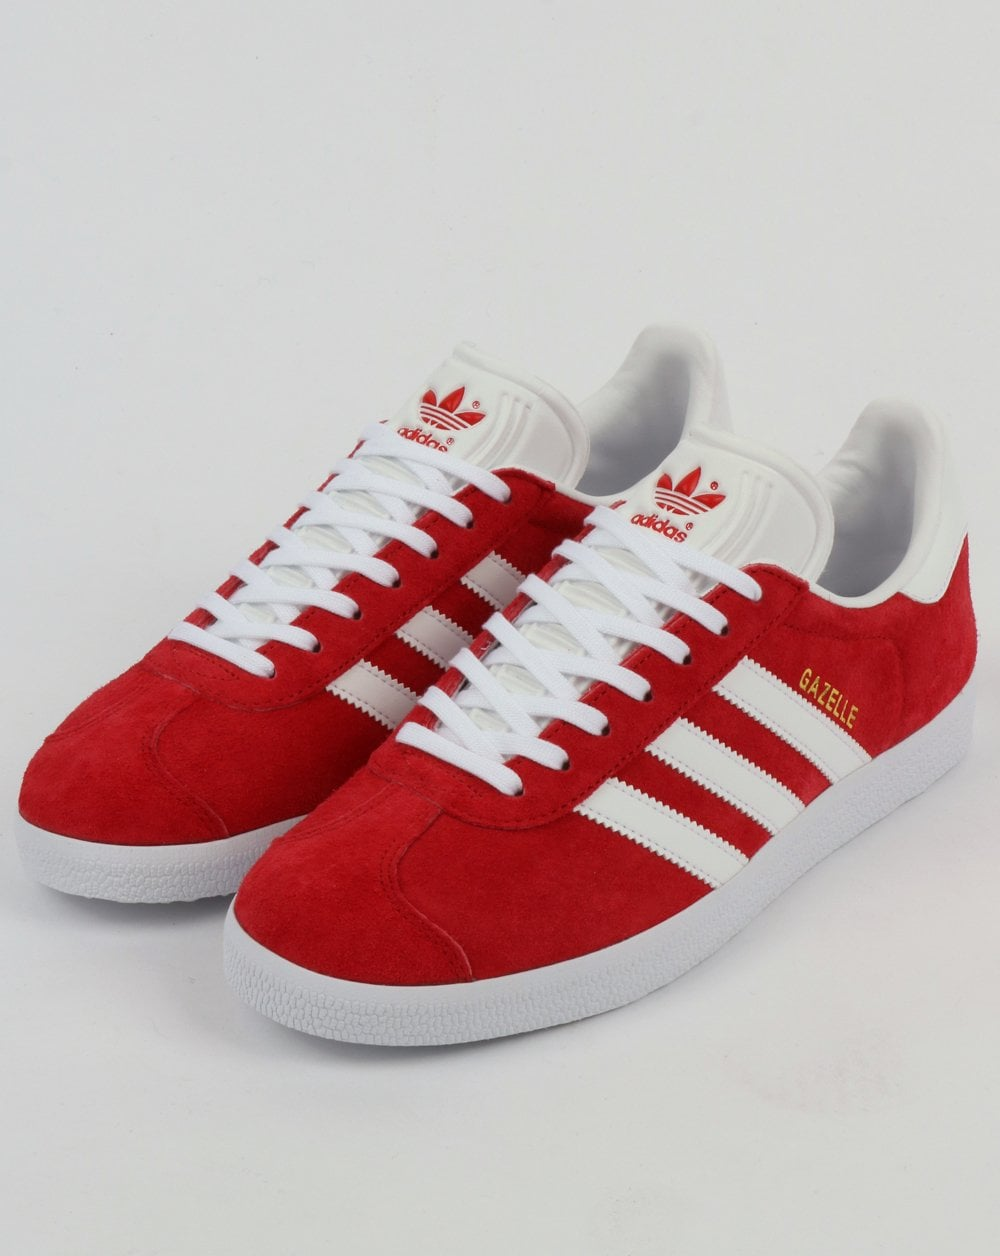 adidas Gazelle 90s red